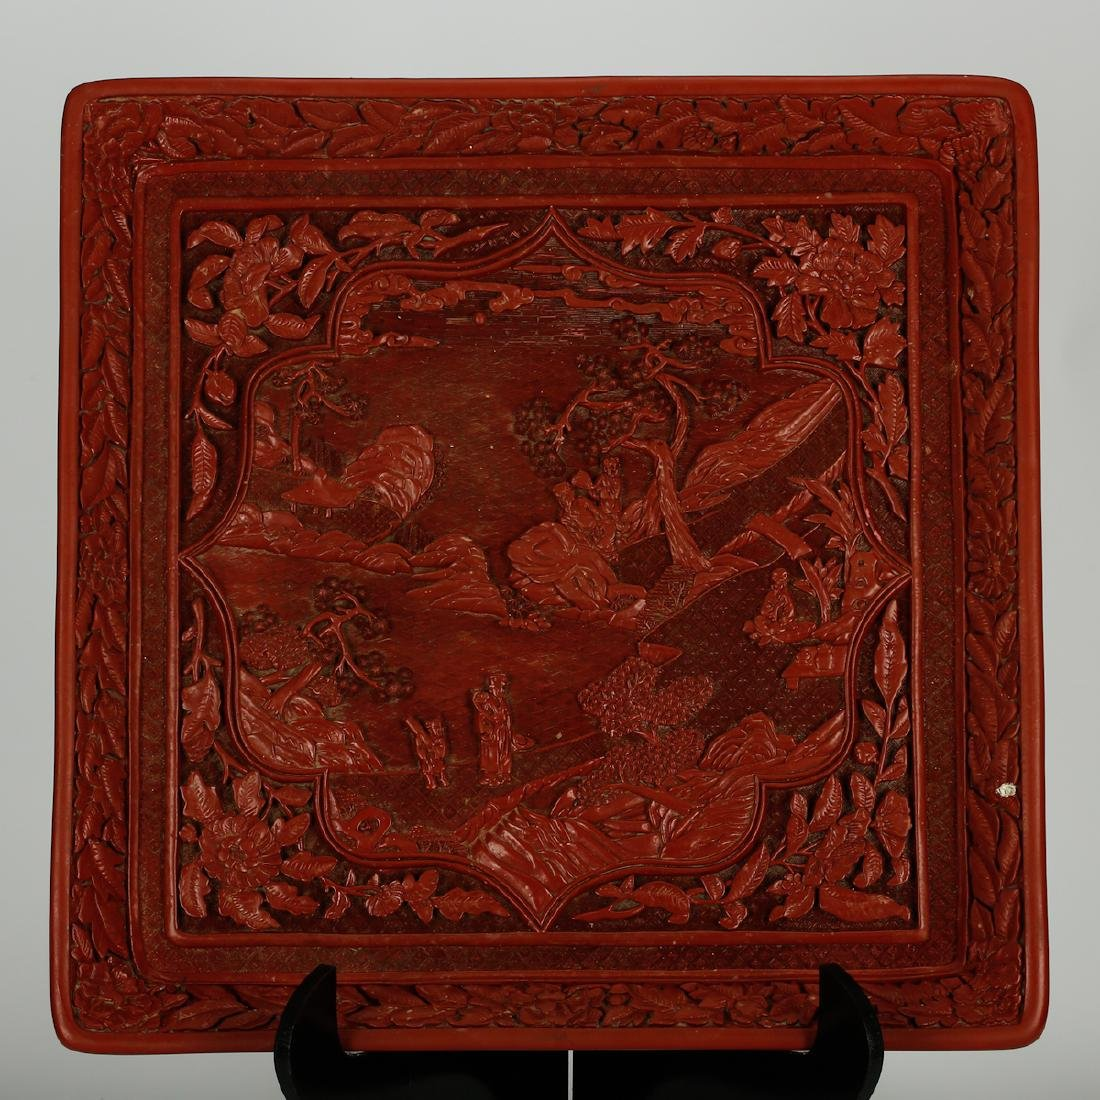 CHINESE CINNABAR LACQUER DISPLAY TRAY